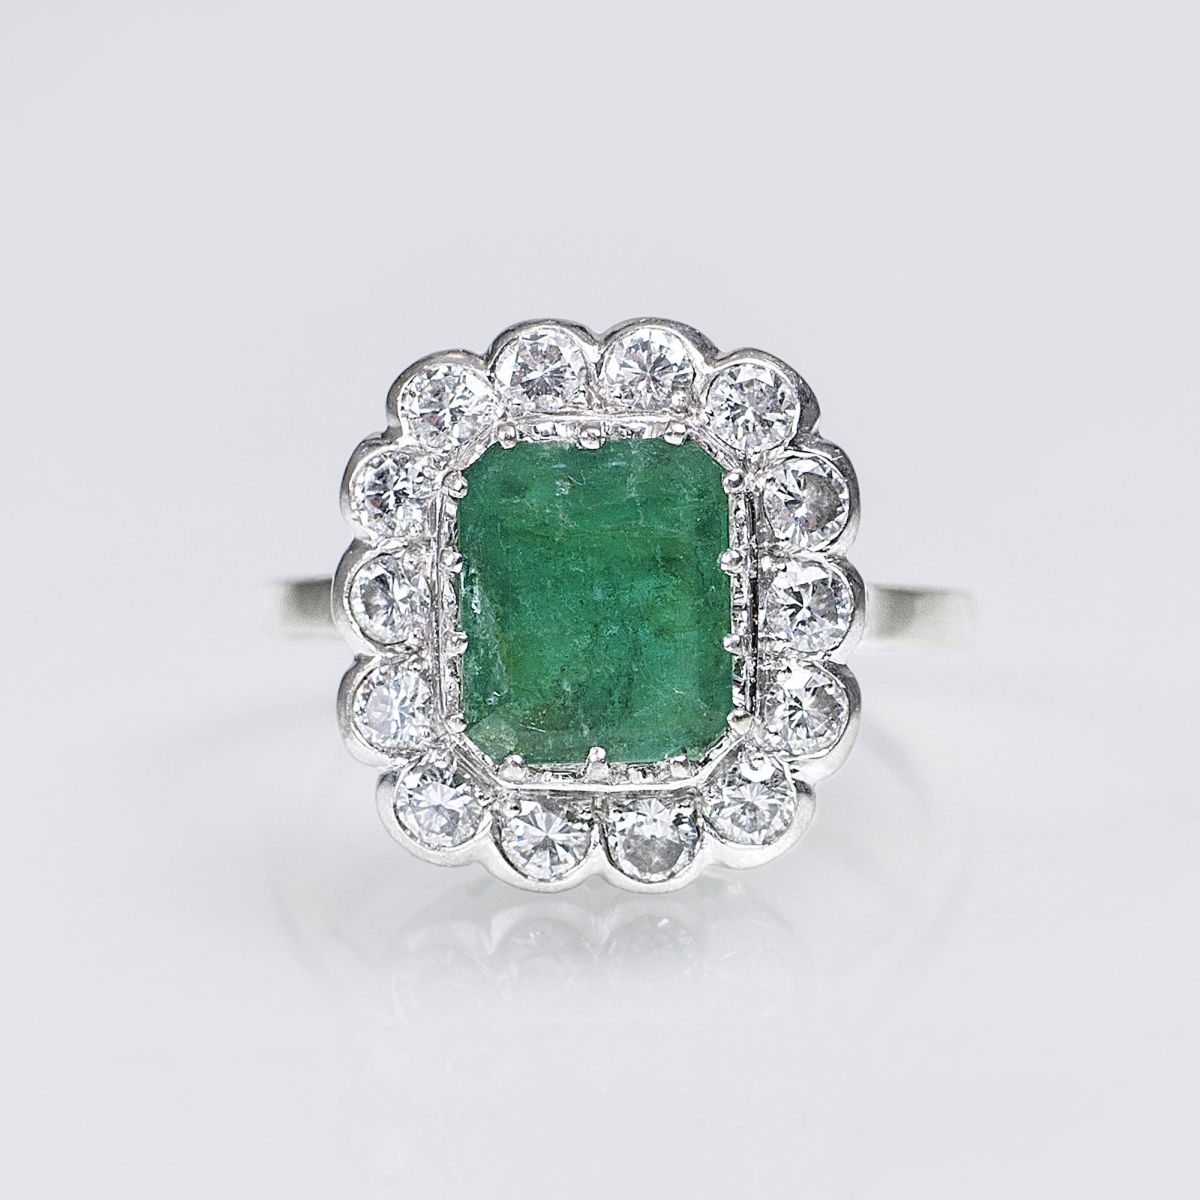 A Vintage Emerald Diamond Ring